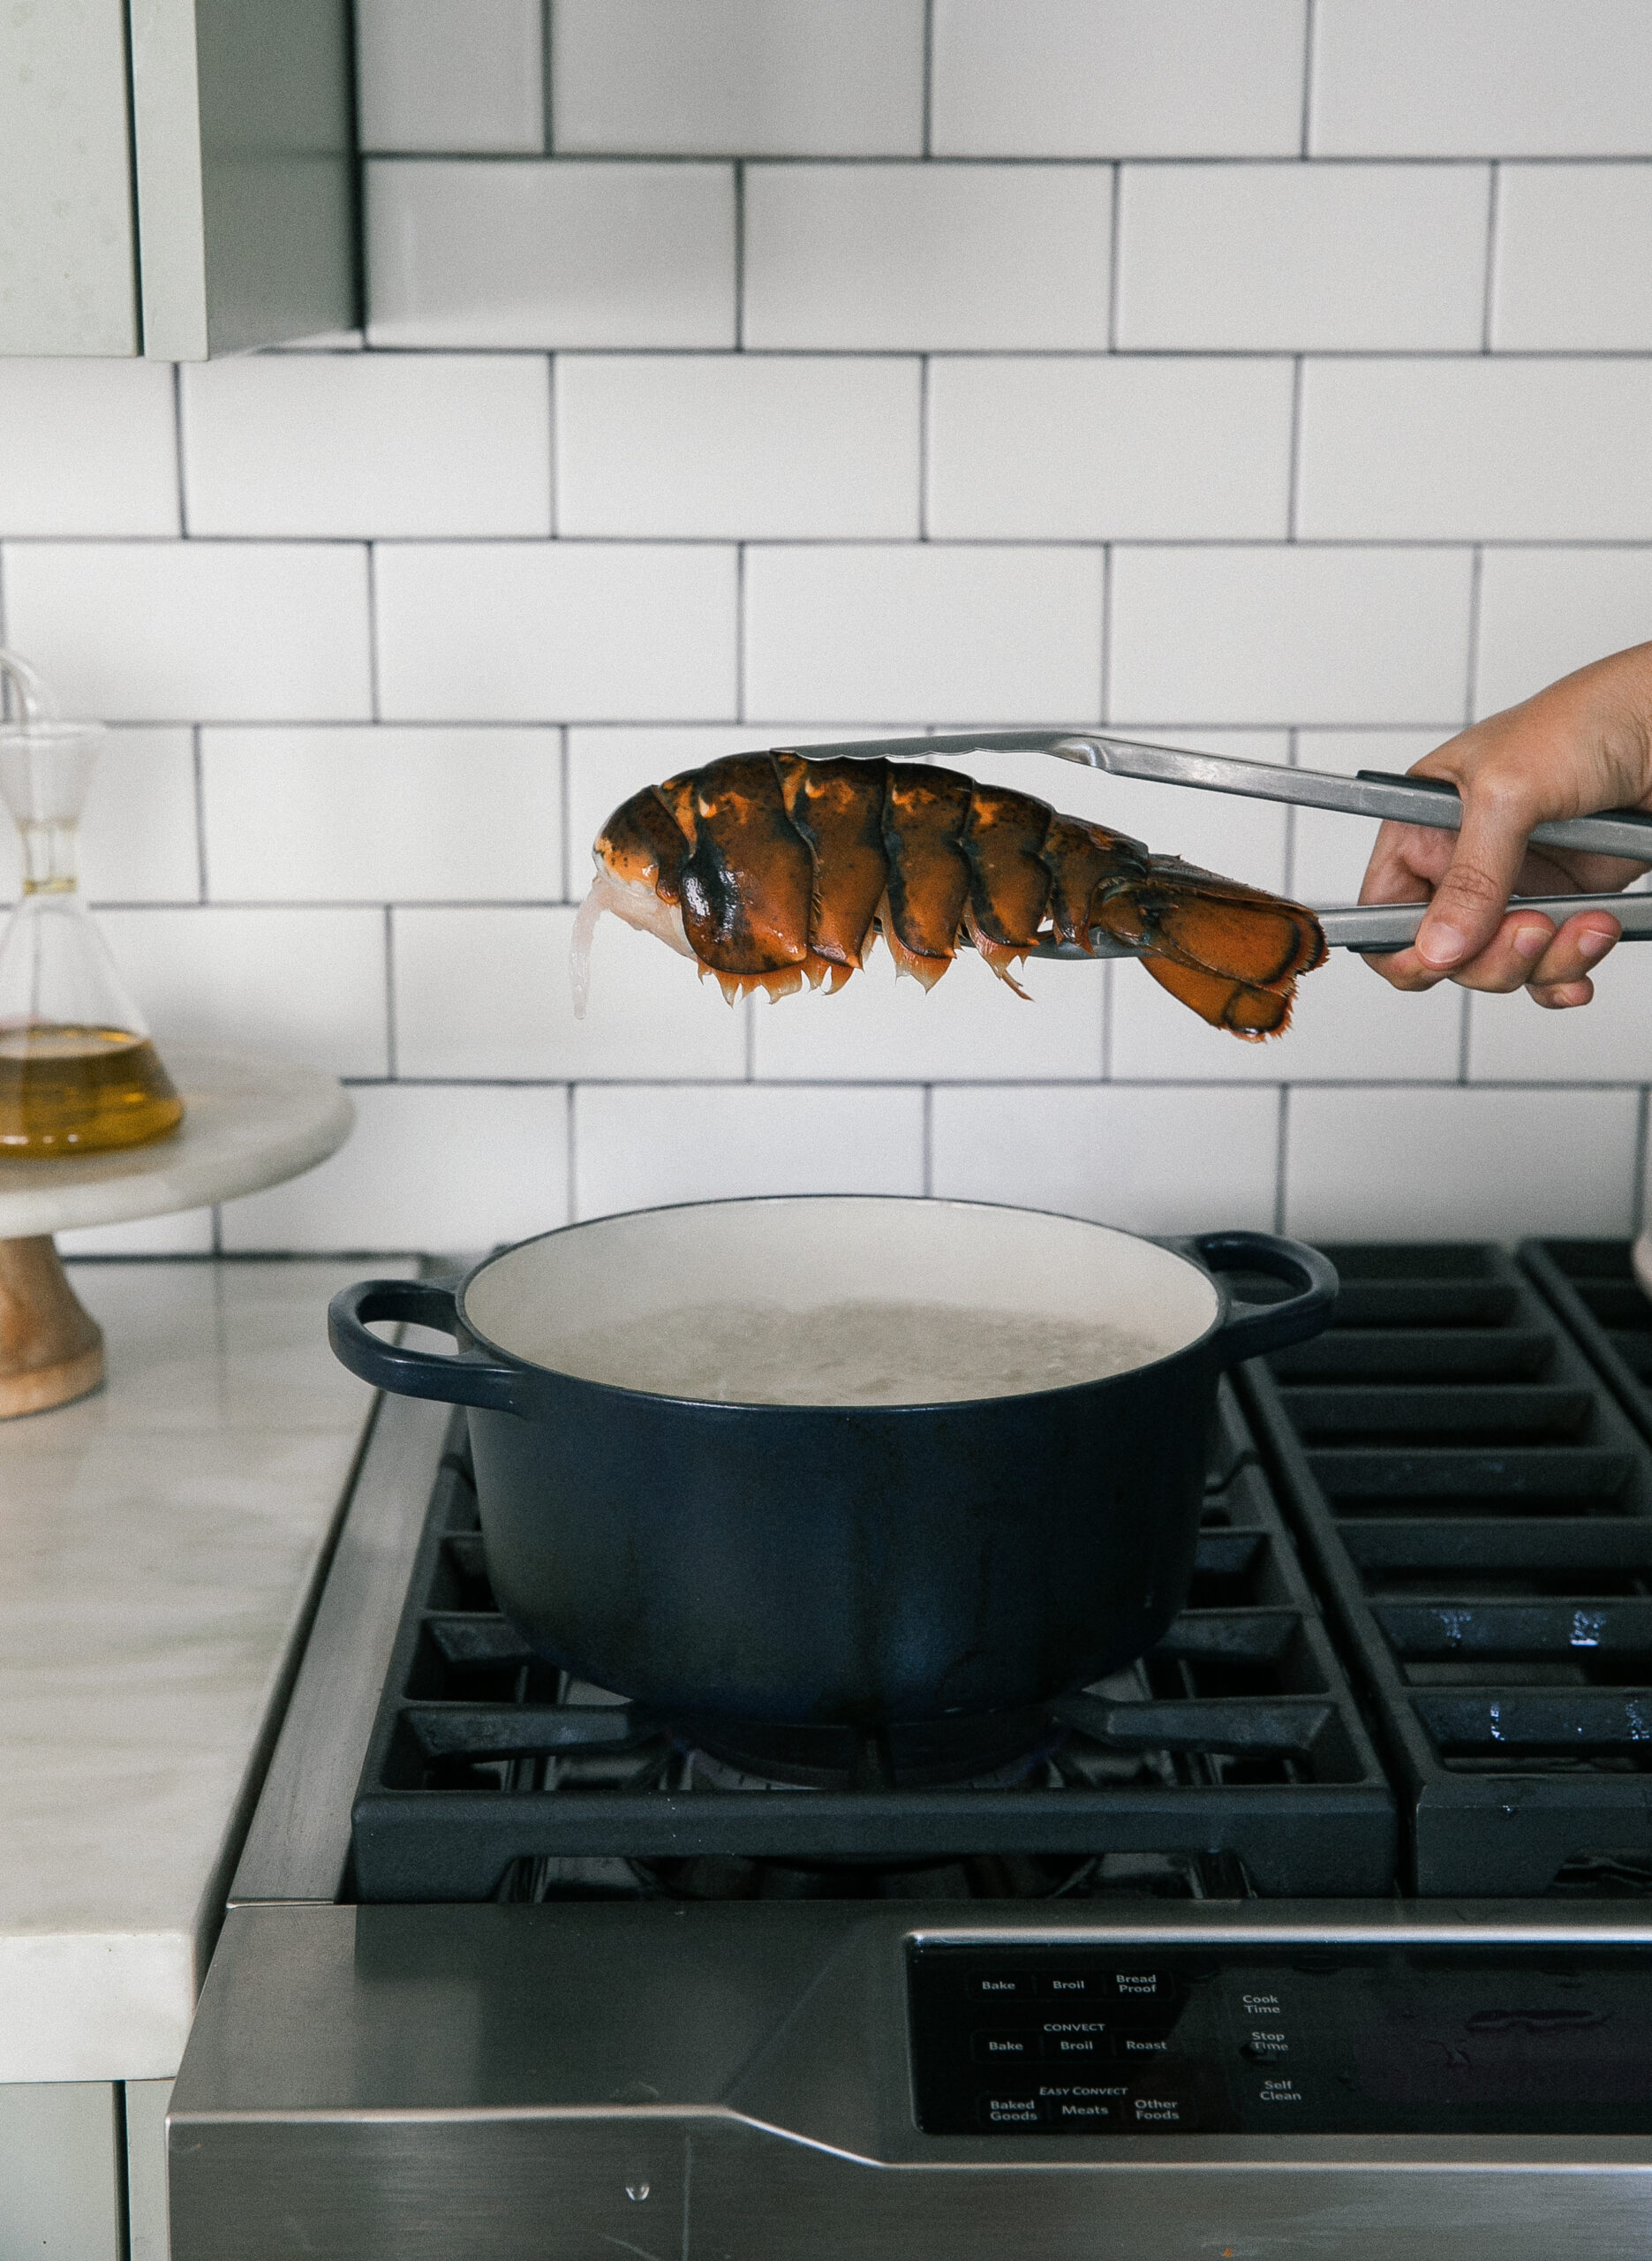 Lobster Tail being lowered in water